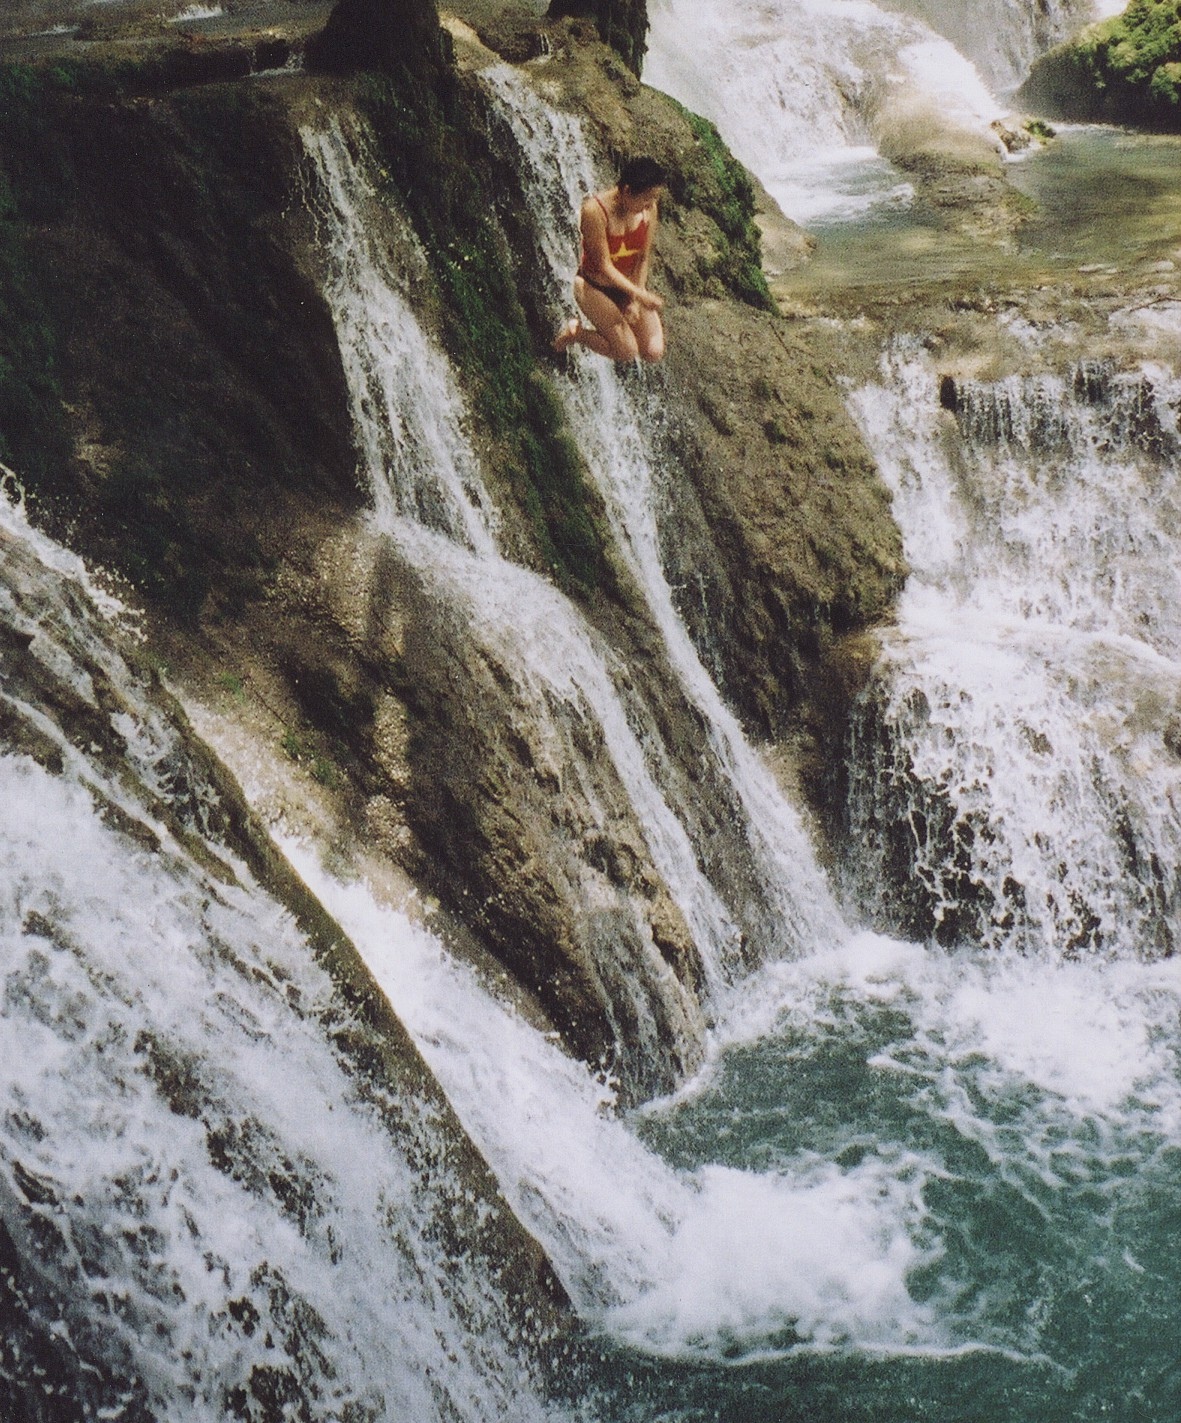 Jumping into a forest waterfall in Vietnam during a round-the-world sabbatical in 2001–2002